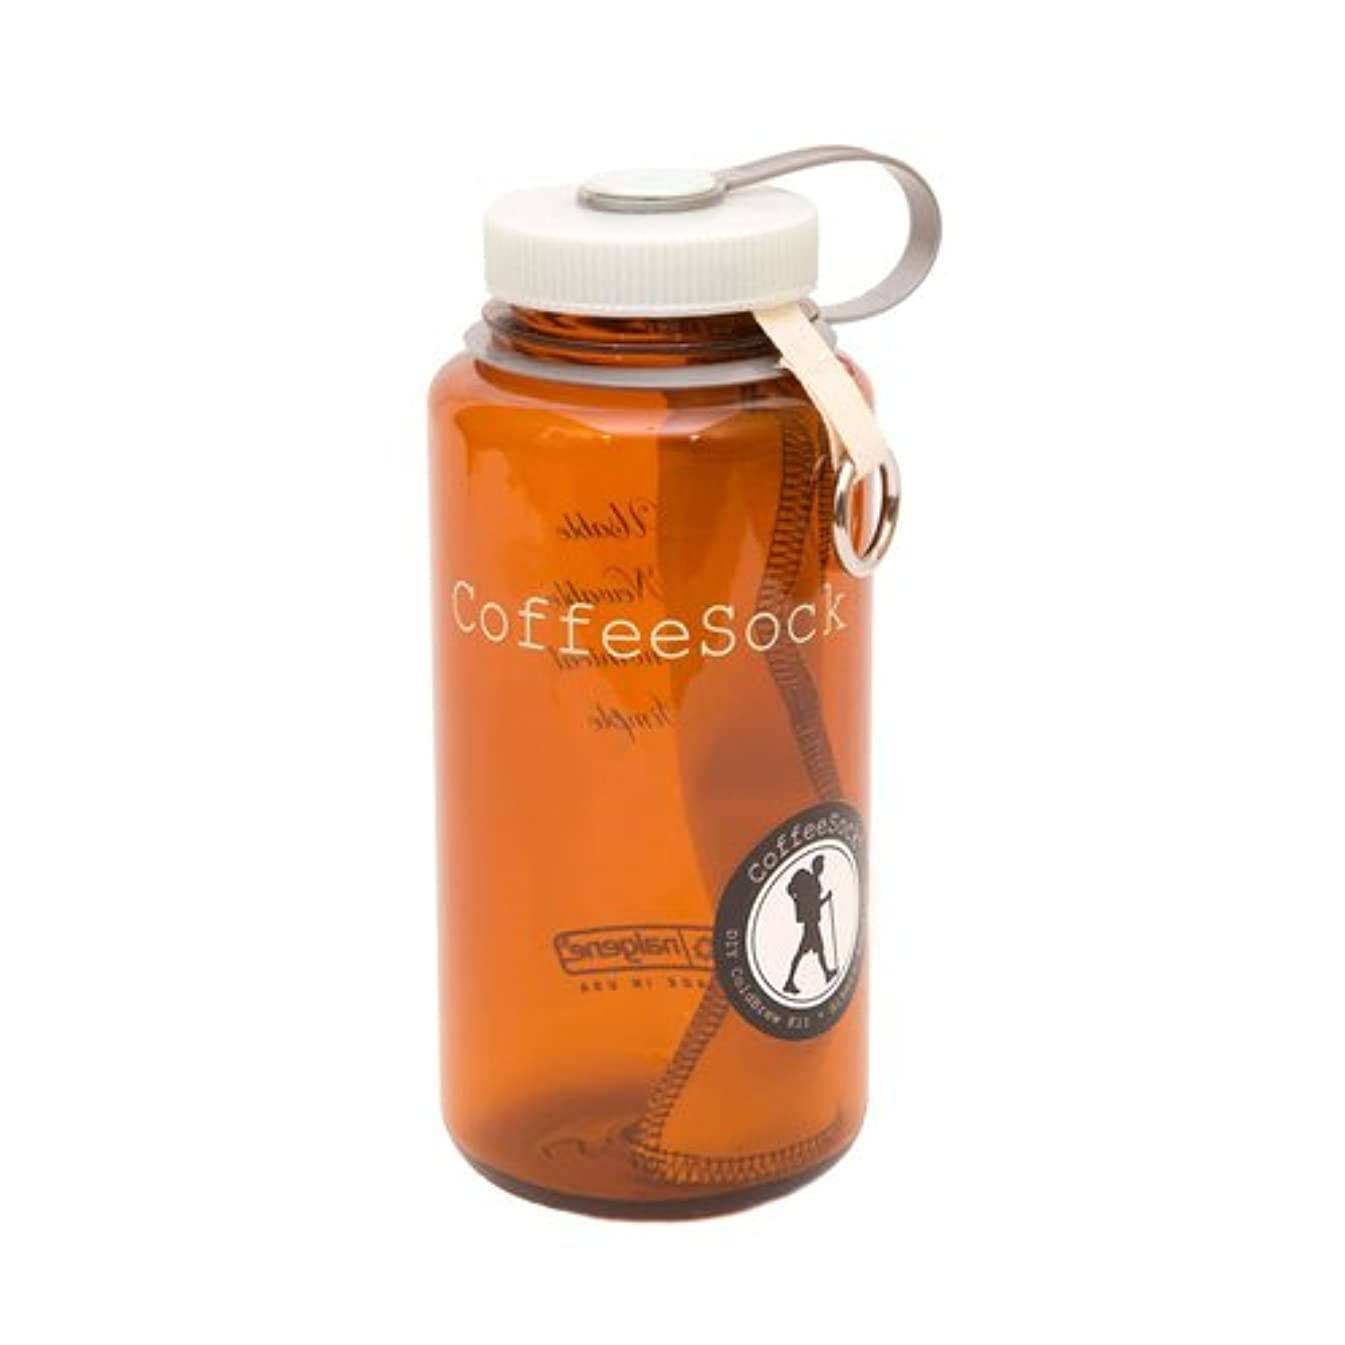 CoffeeSock DIY Hikers Edition ColdBrew Kit - GOTS Certified Organic Cotton Reusable Coffee Filters.